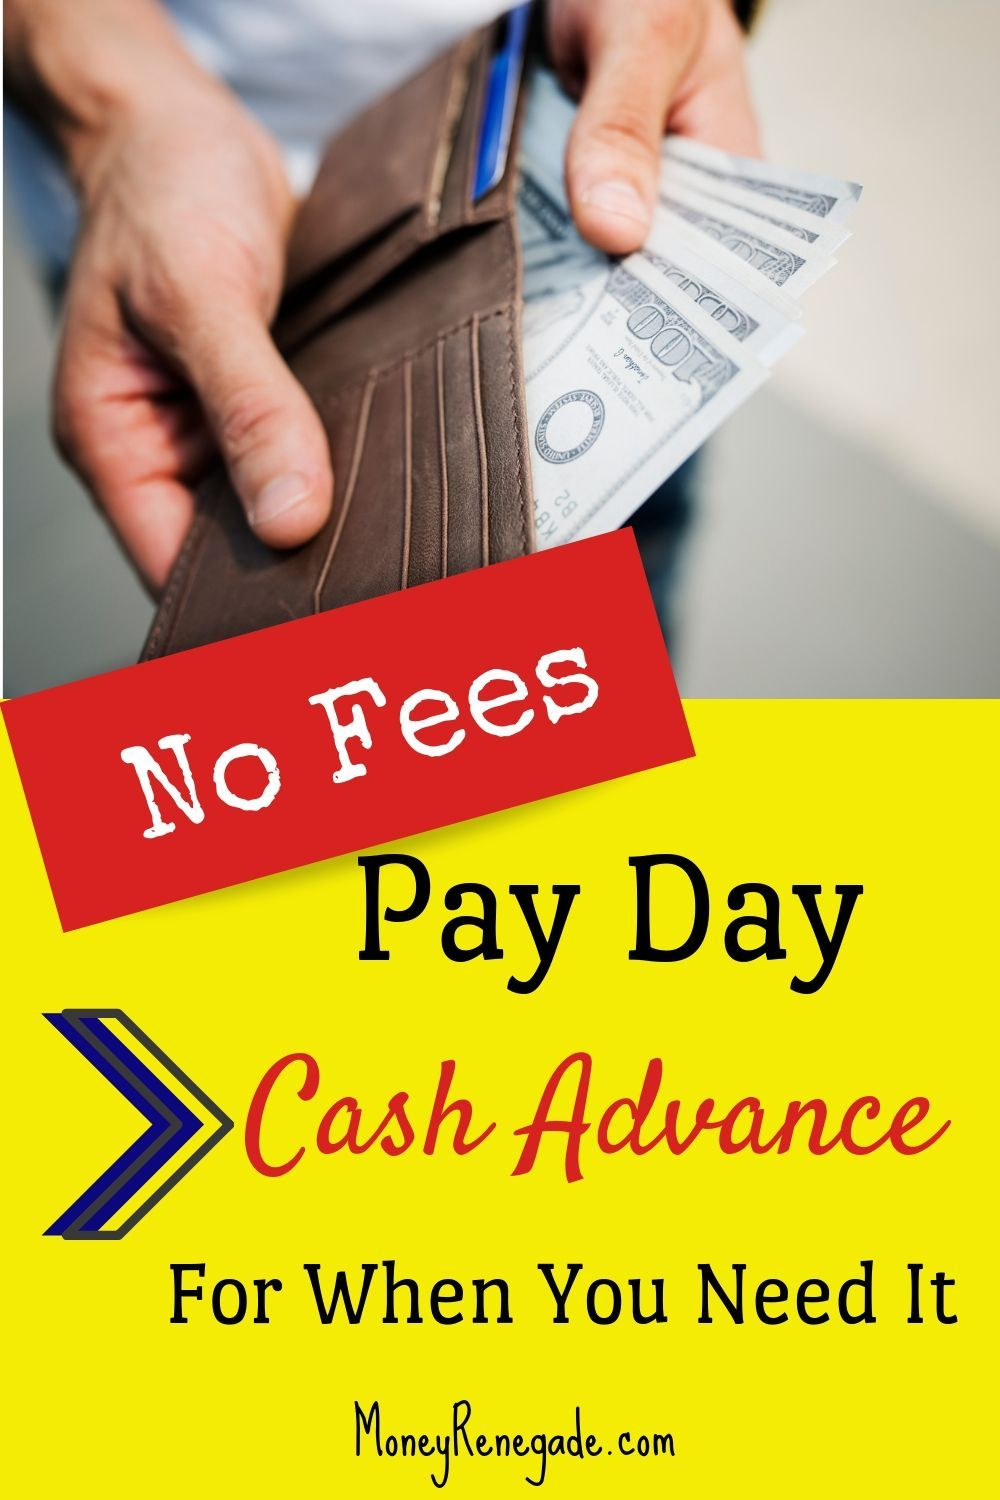 There Is An App For A Payday Cash Advance Without Fees The App Allows In 2020 Payday Loans Payday Payday Loans Online